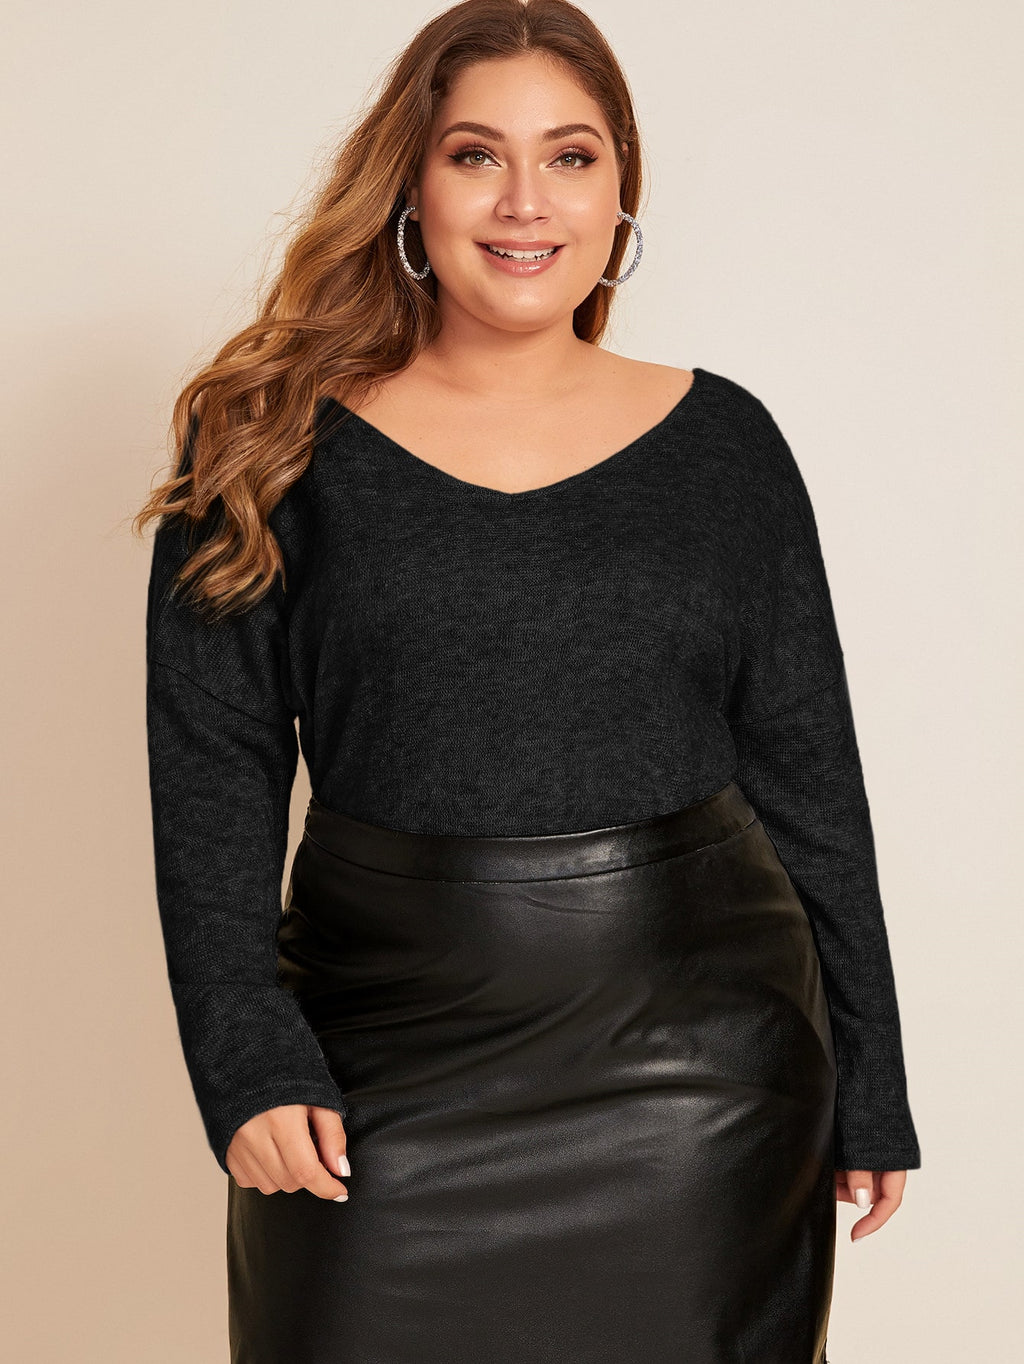 Plus Size Sexy Back Lace Sweater Top